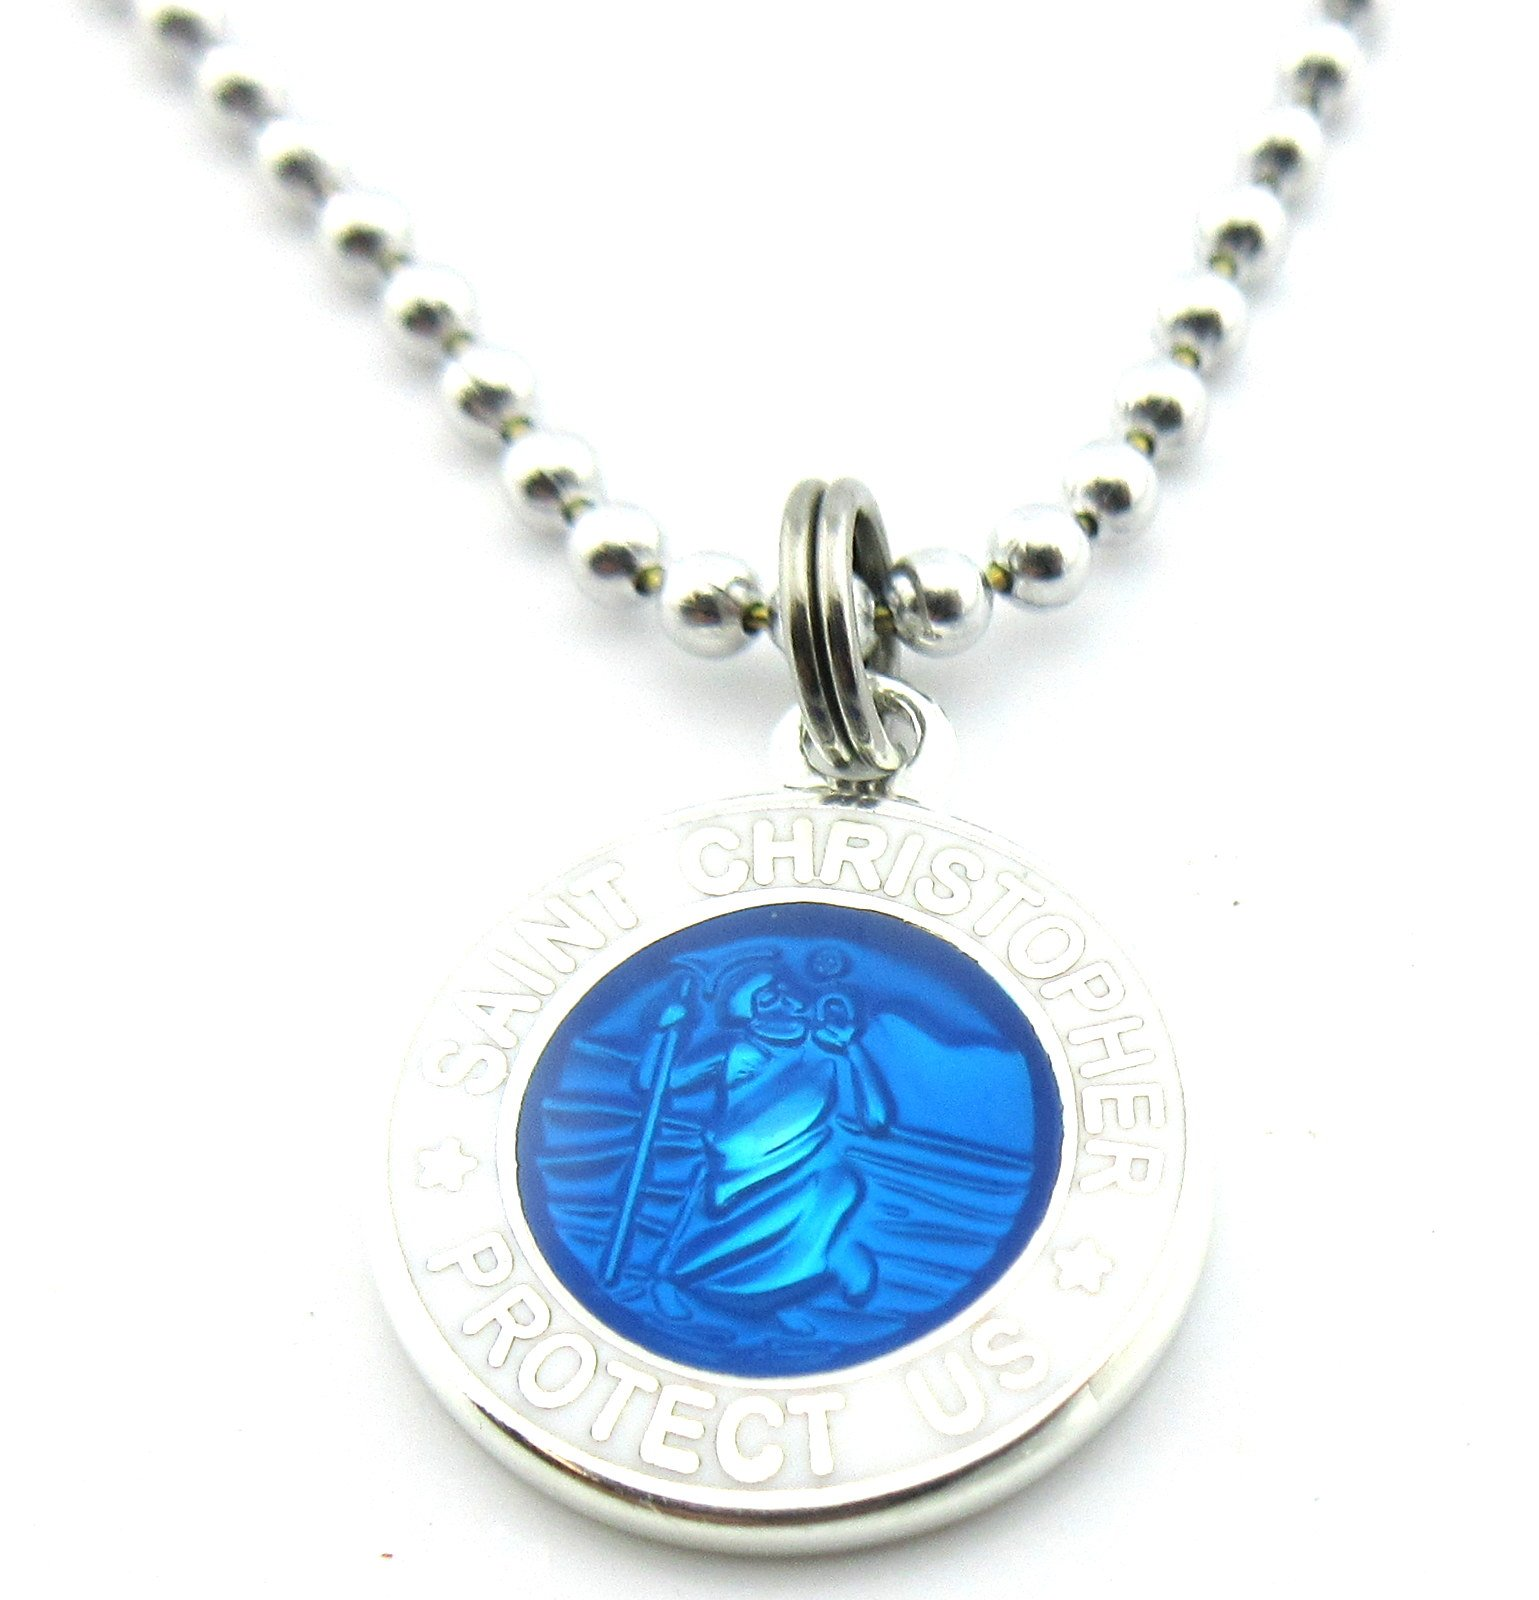 Get Back Supply Co Mini St Christopher Surf Medal Pendant Necklace,Royal Blue RB/WH